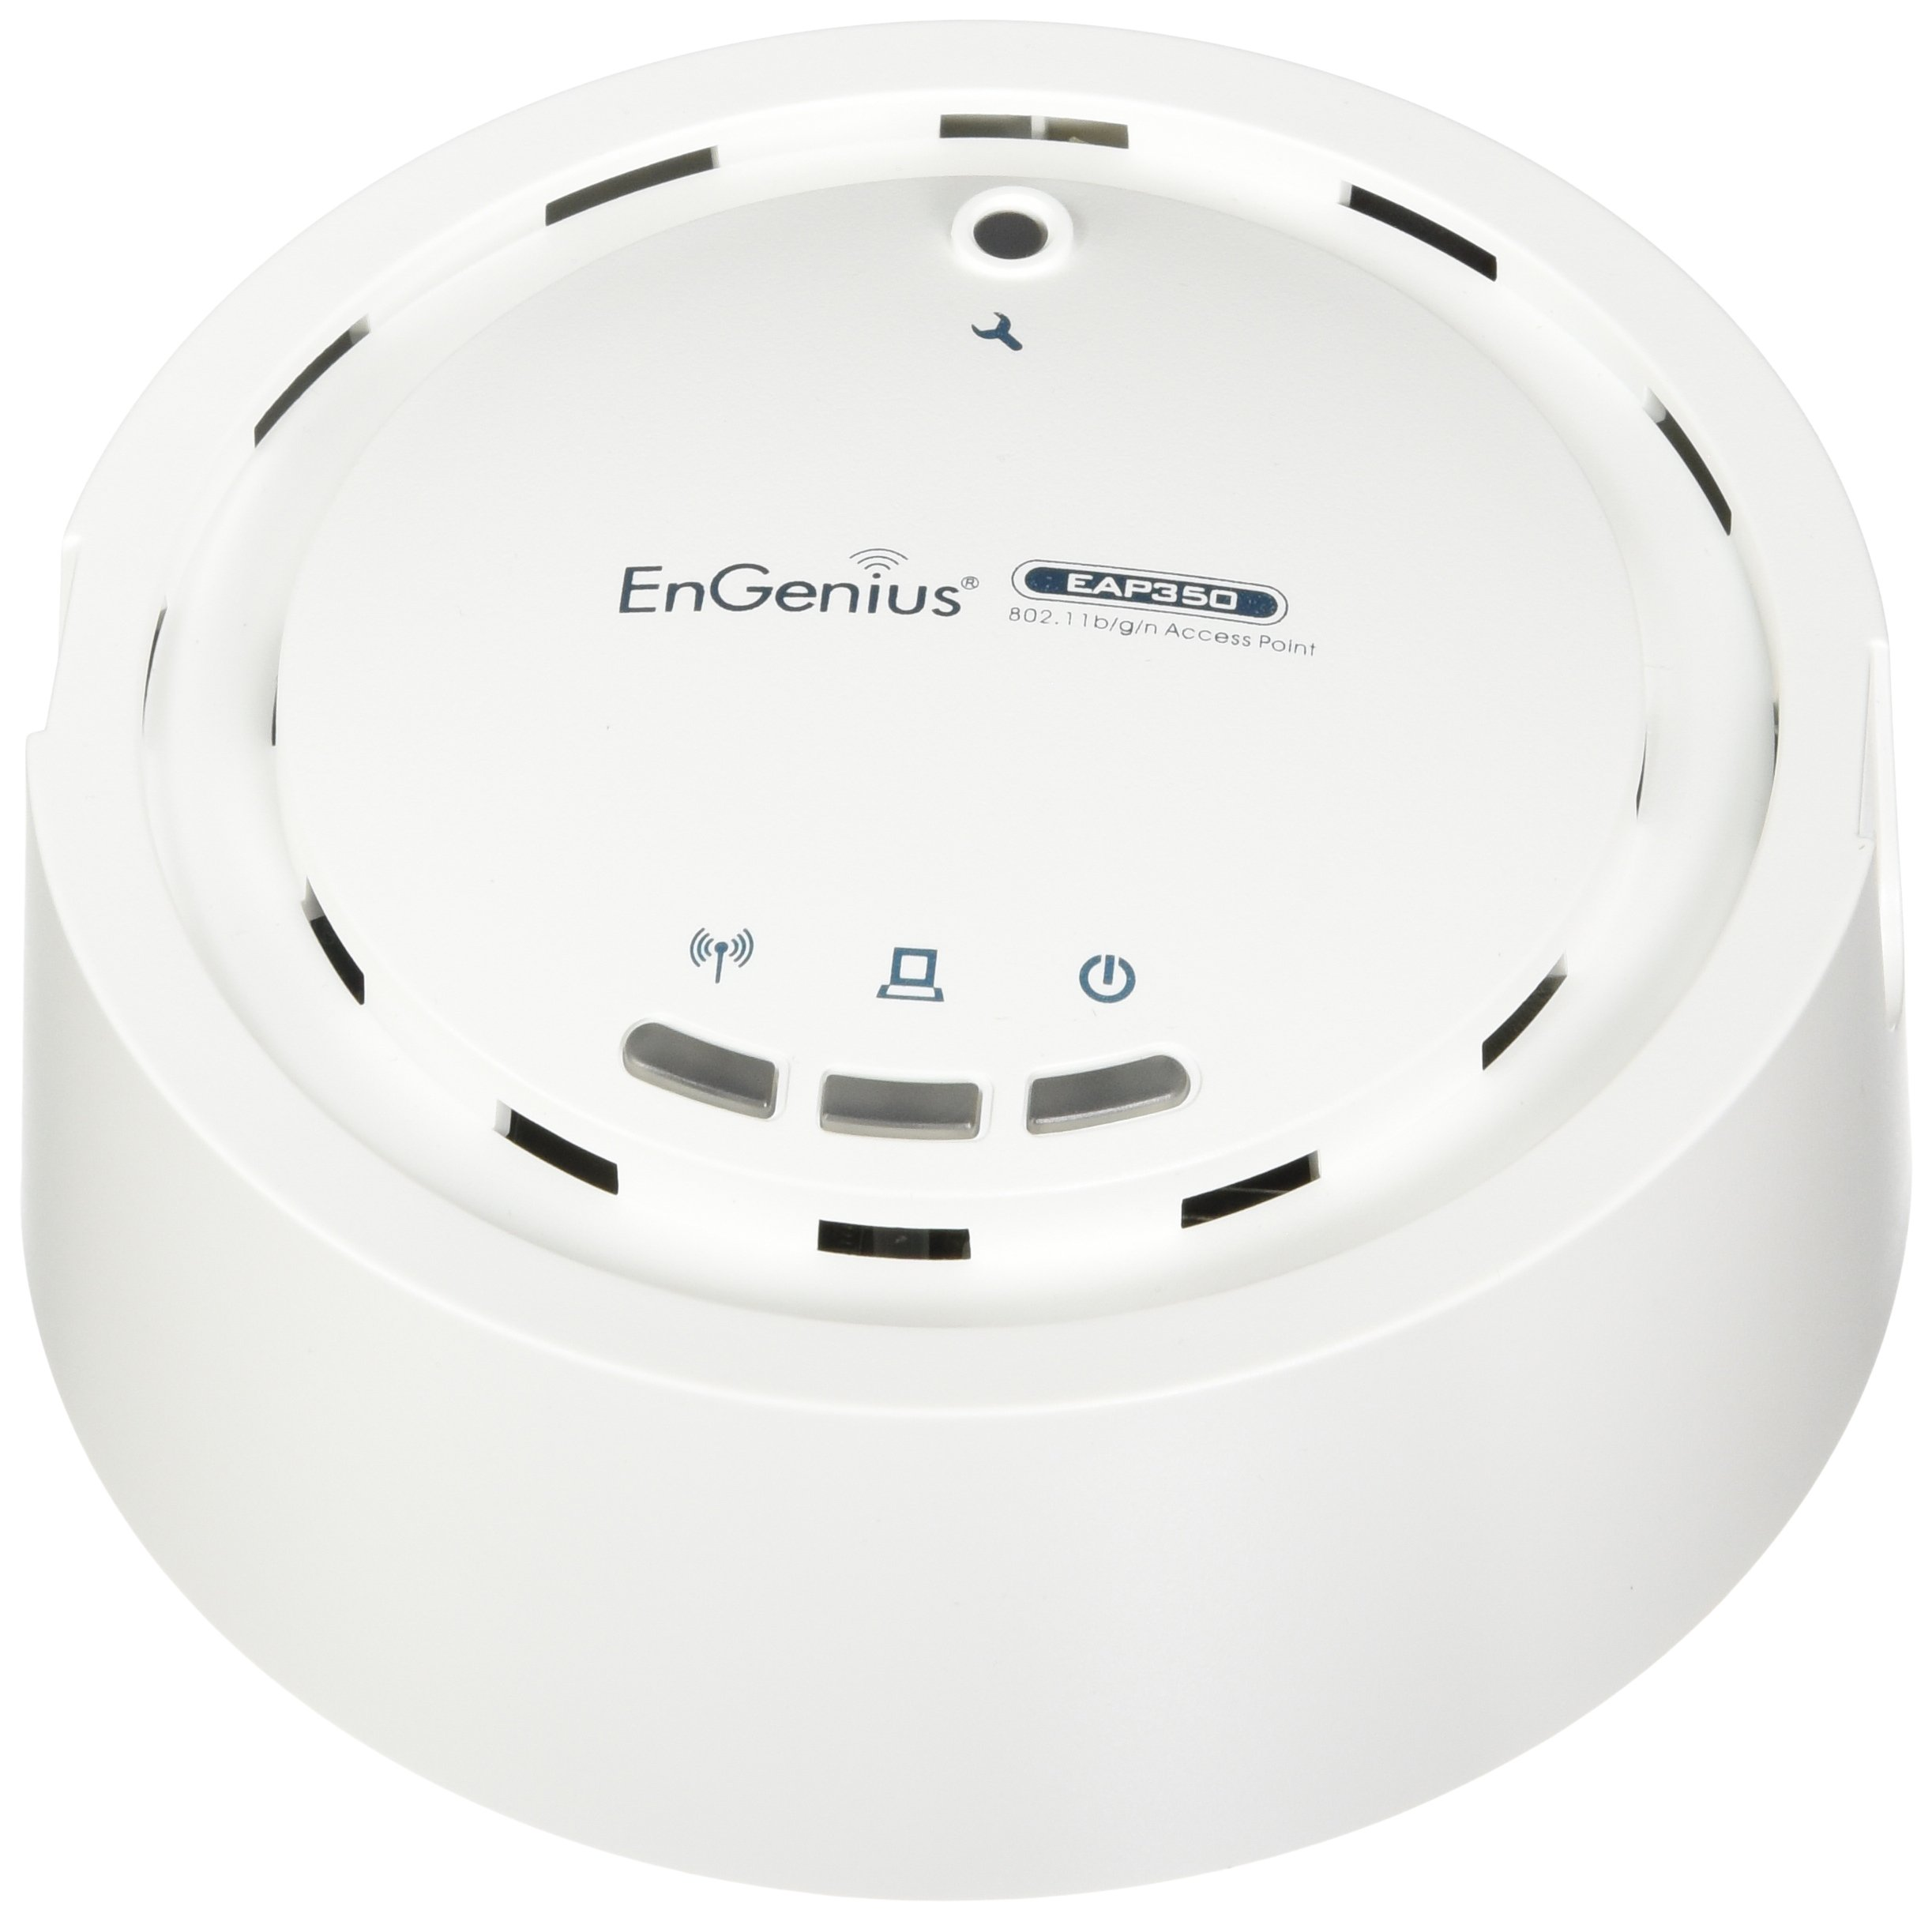 EnGenius 802.11n 2x2, 2.4 GHz, high-powered, long range, 29 dBm, Indoor Ceiling-mount Wireless AP with integrated Antennas, gigabit port, Indoor N300 Access Point with PoE Injector (N-EAP350 KIT)